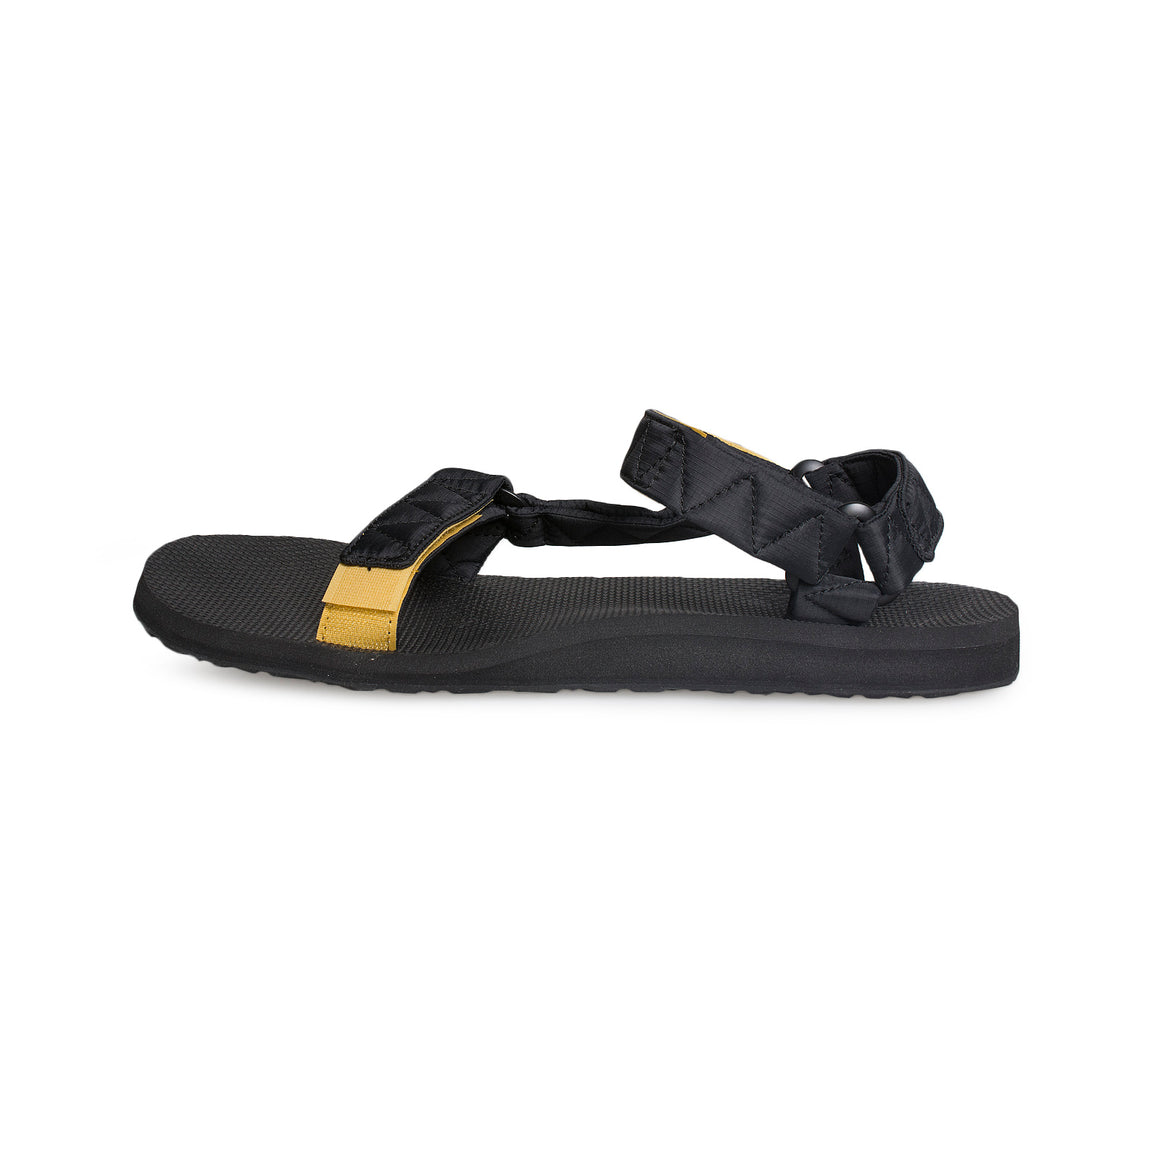 Teva Original Universal Puff Black Sandals - Women's